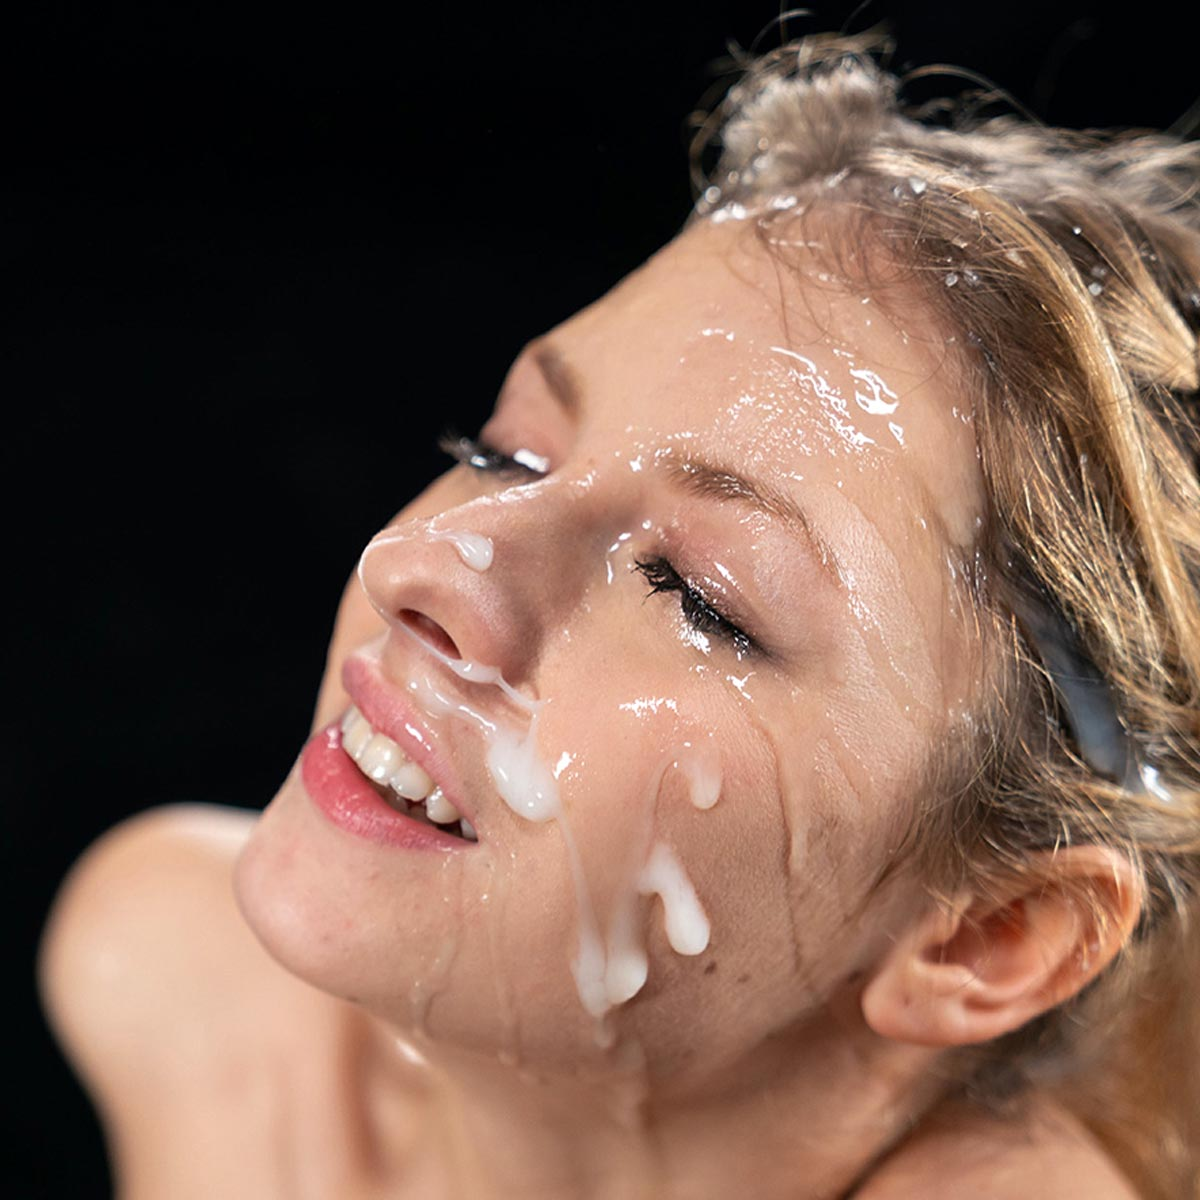 Facials, Facial Cumshots on the face of a girl. Rebecca Volpetti is glazed with sperm from several ejaculations.